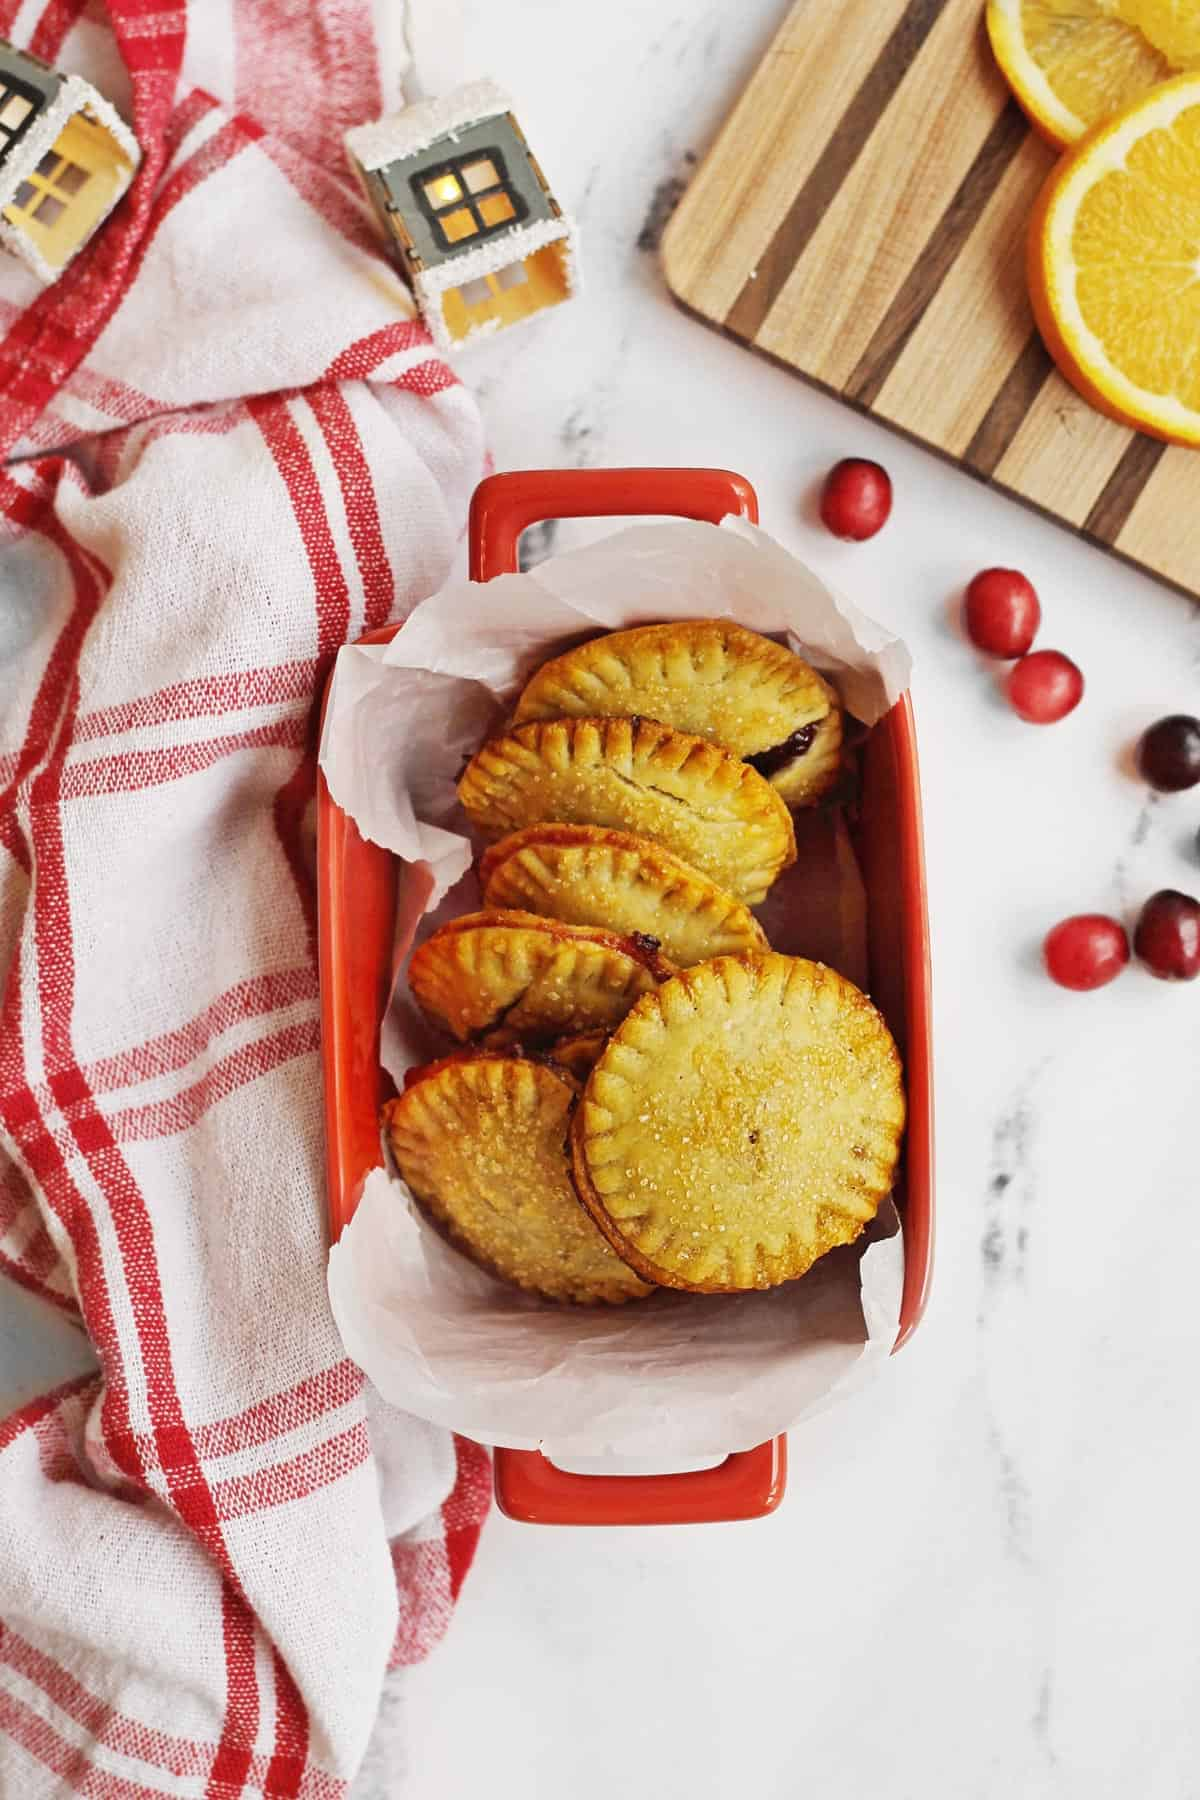 Cranberry orange hand pies in a red pan